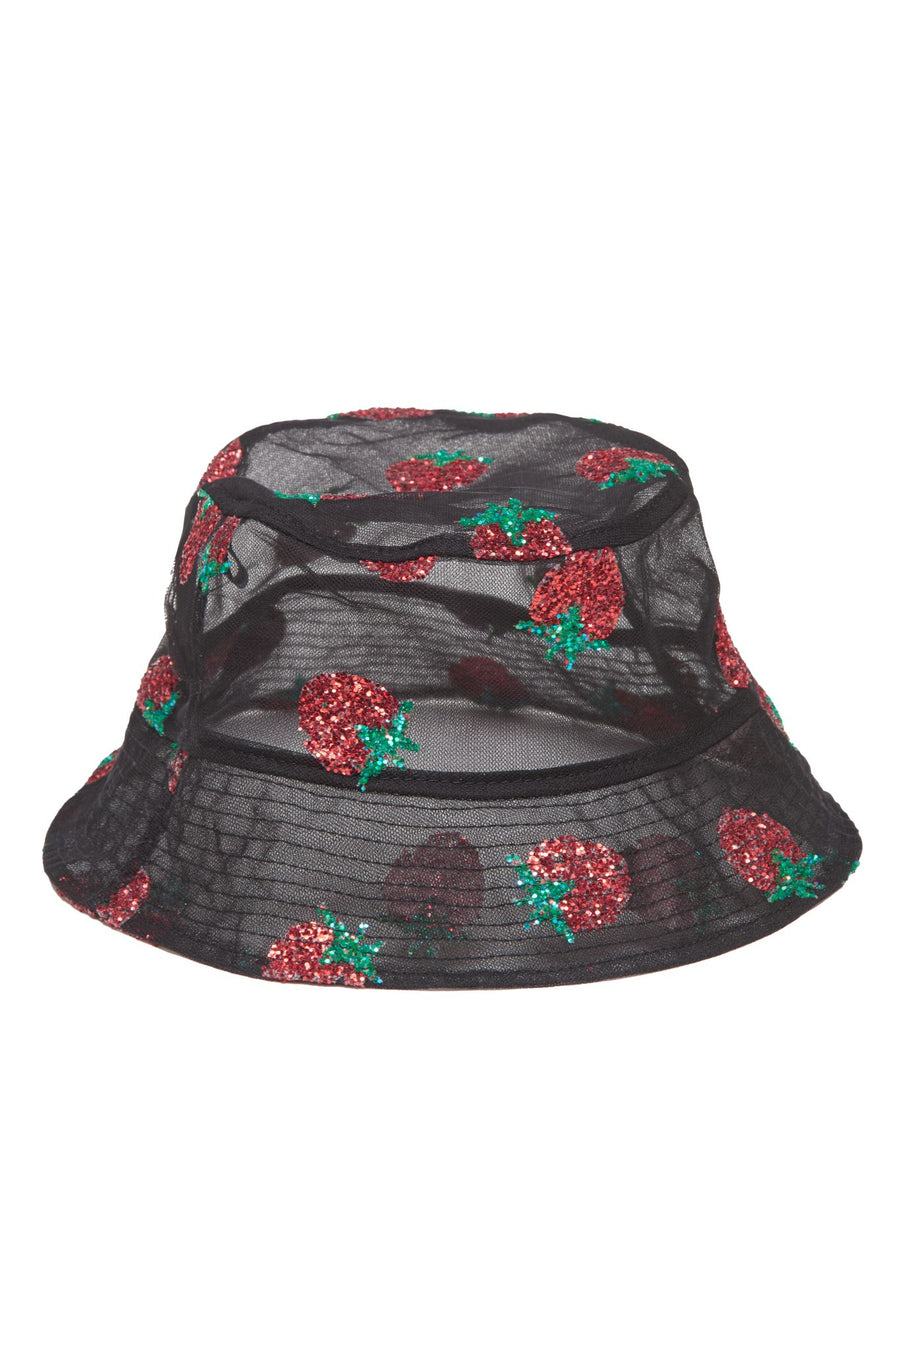 Strawberry Black Bucket Hat